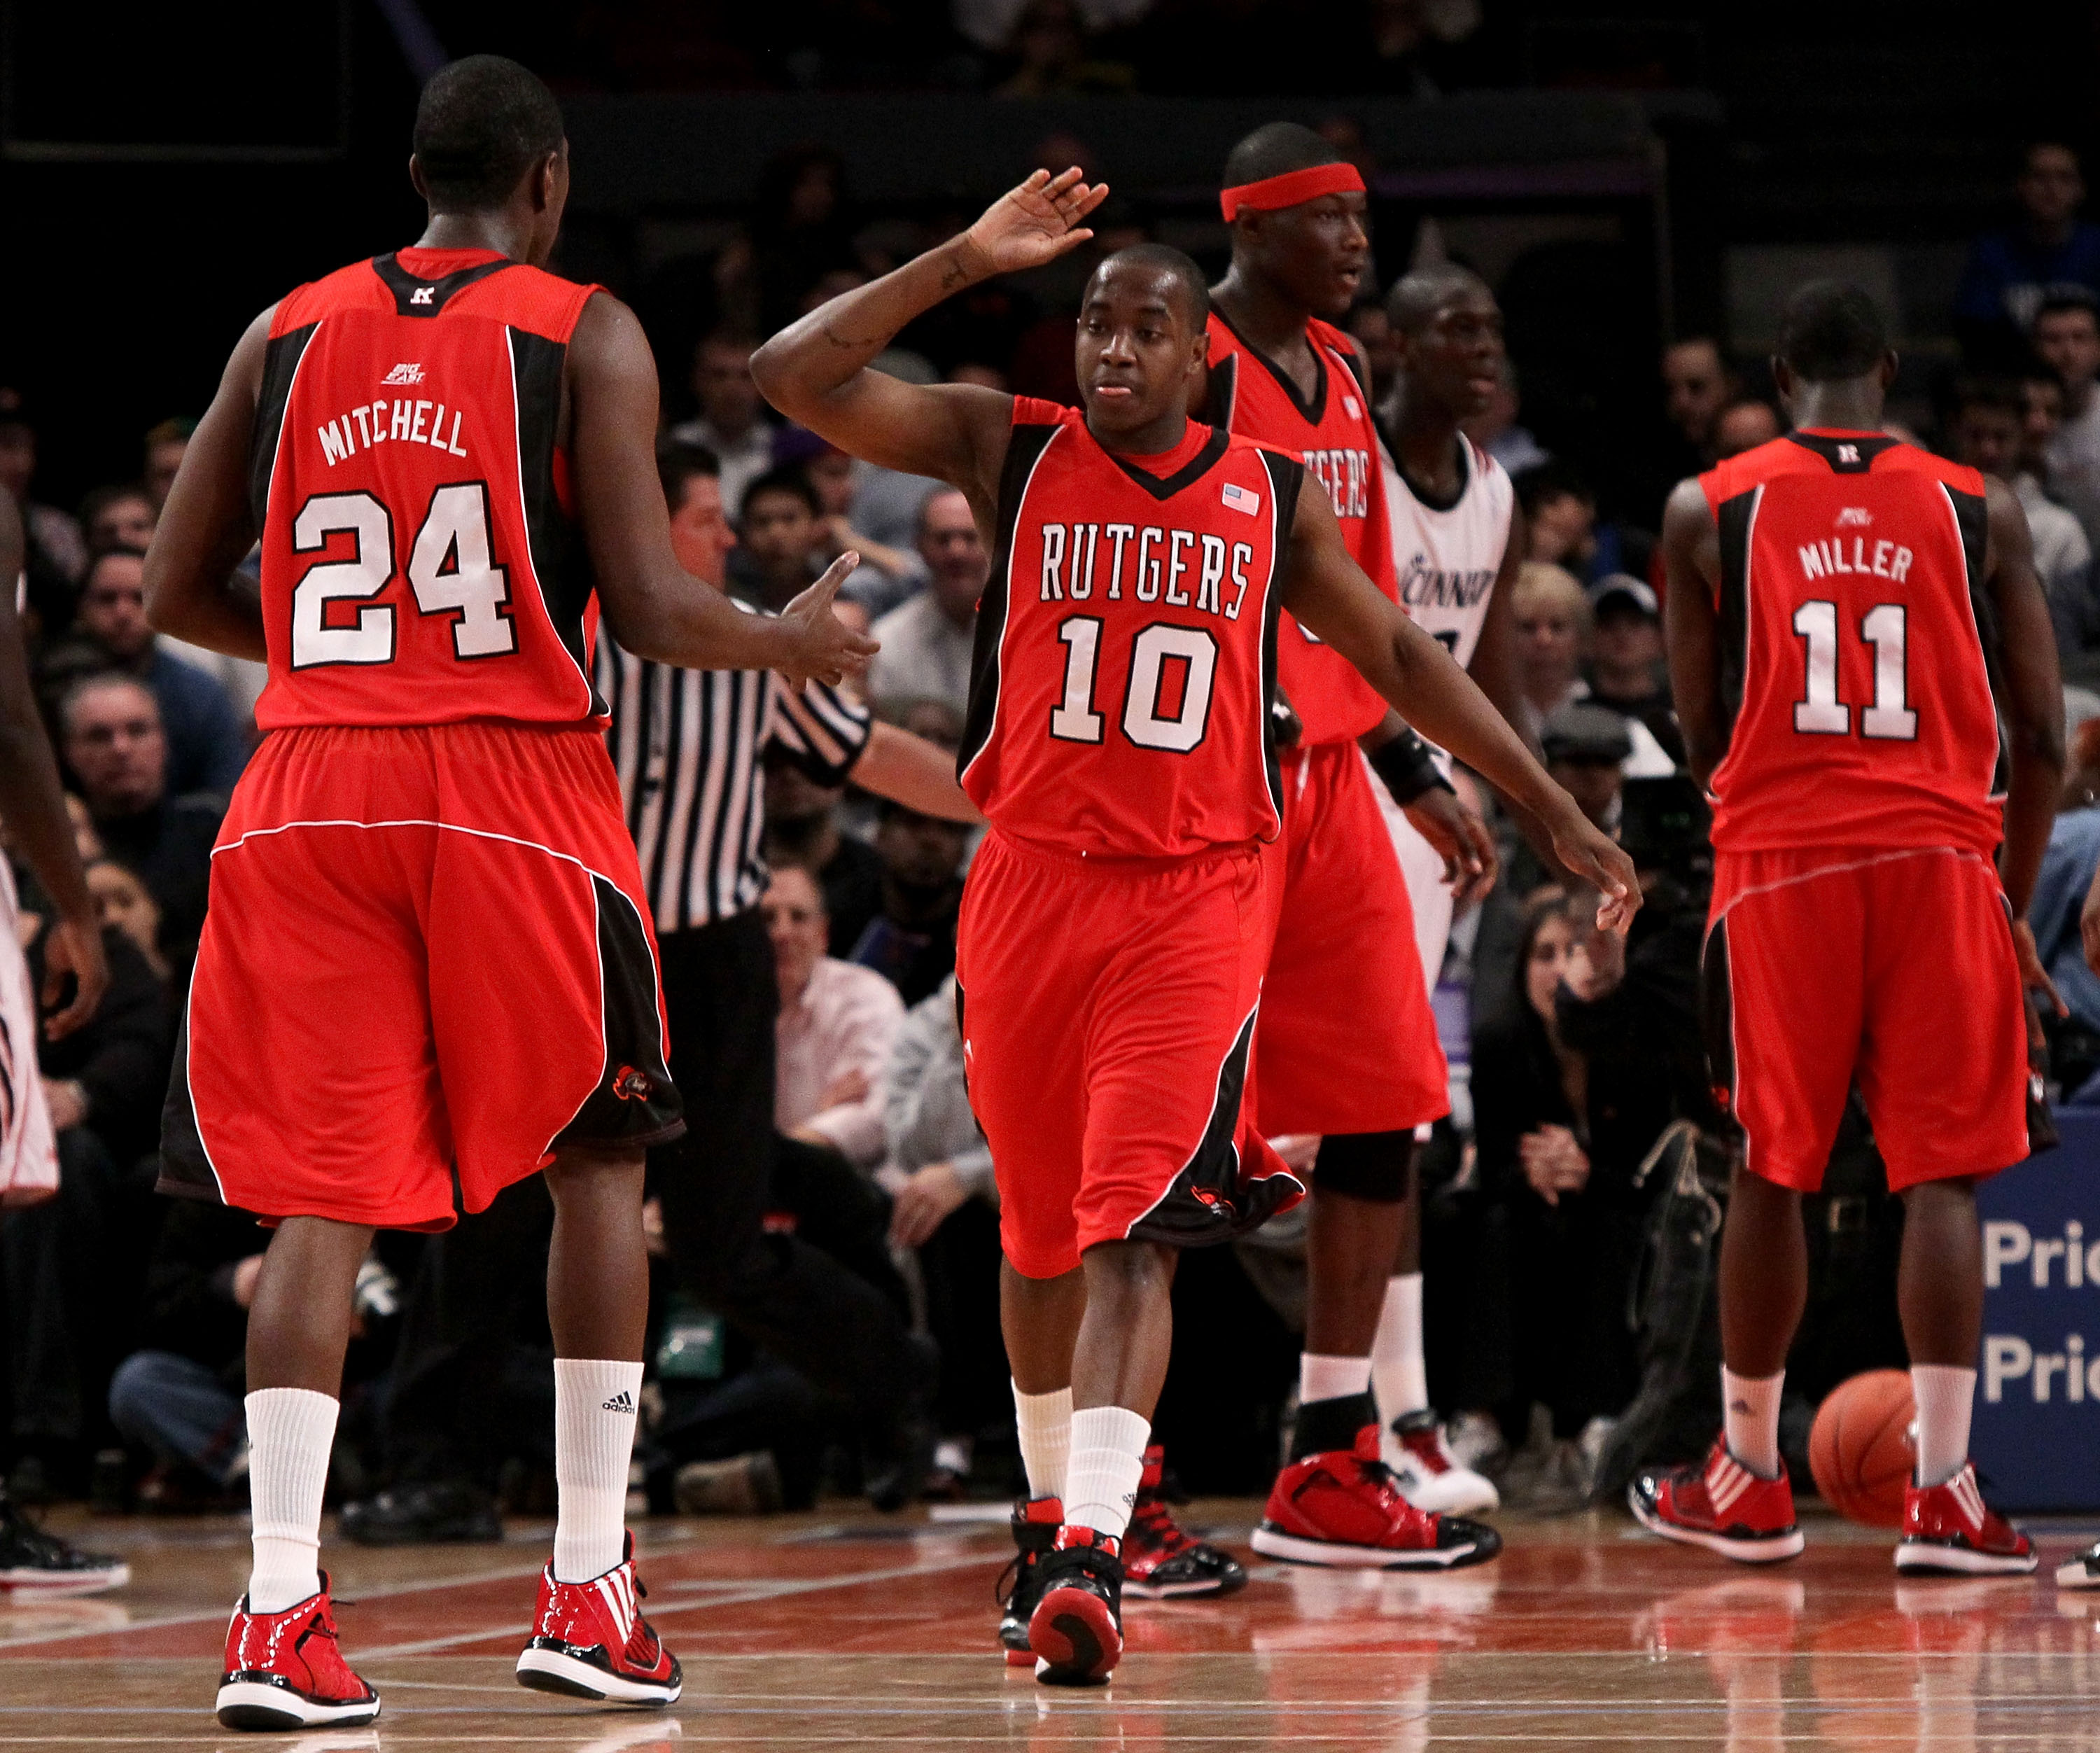 NEW YORK - MARCH 09: James Beatty #10 and Jonathan Mitchell #24 of the Rutgers Scarlet Knights react after a play against the Cincinnati Bearcats during the first round game of the Big East Basketball Tournament at Madison Square Garden on March 9, 2010 i